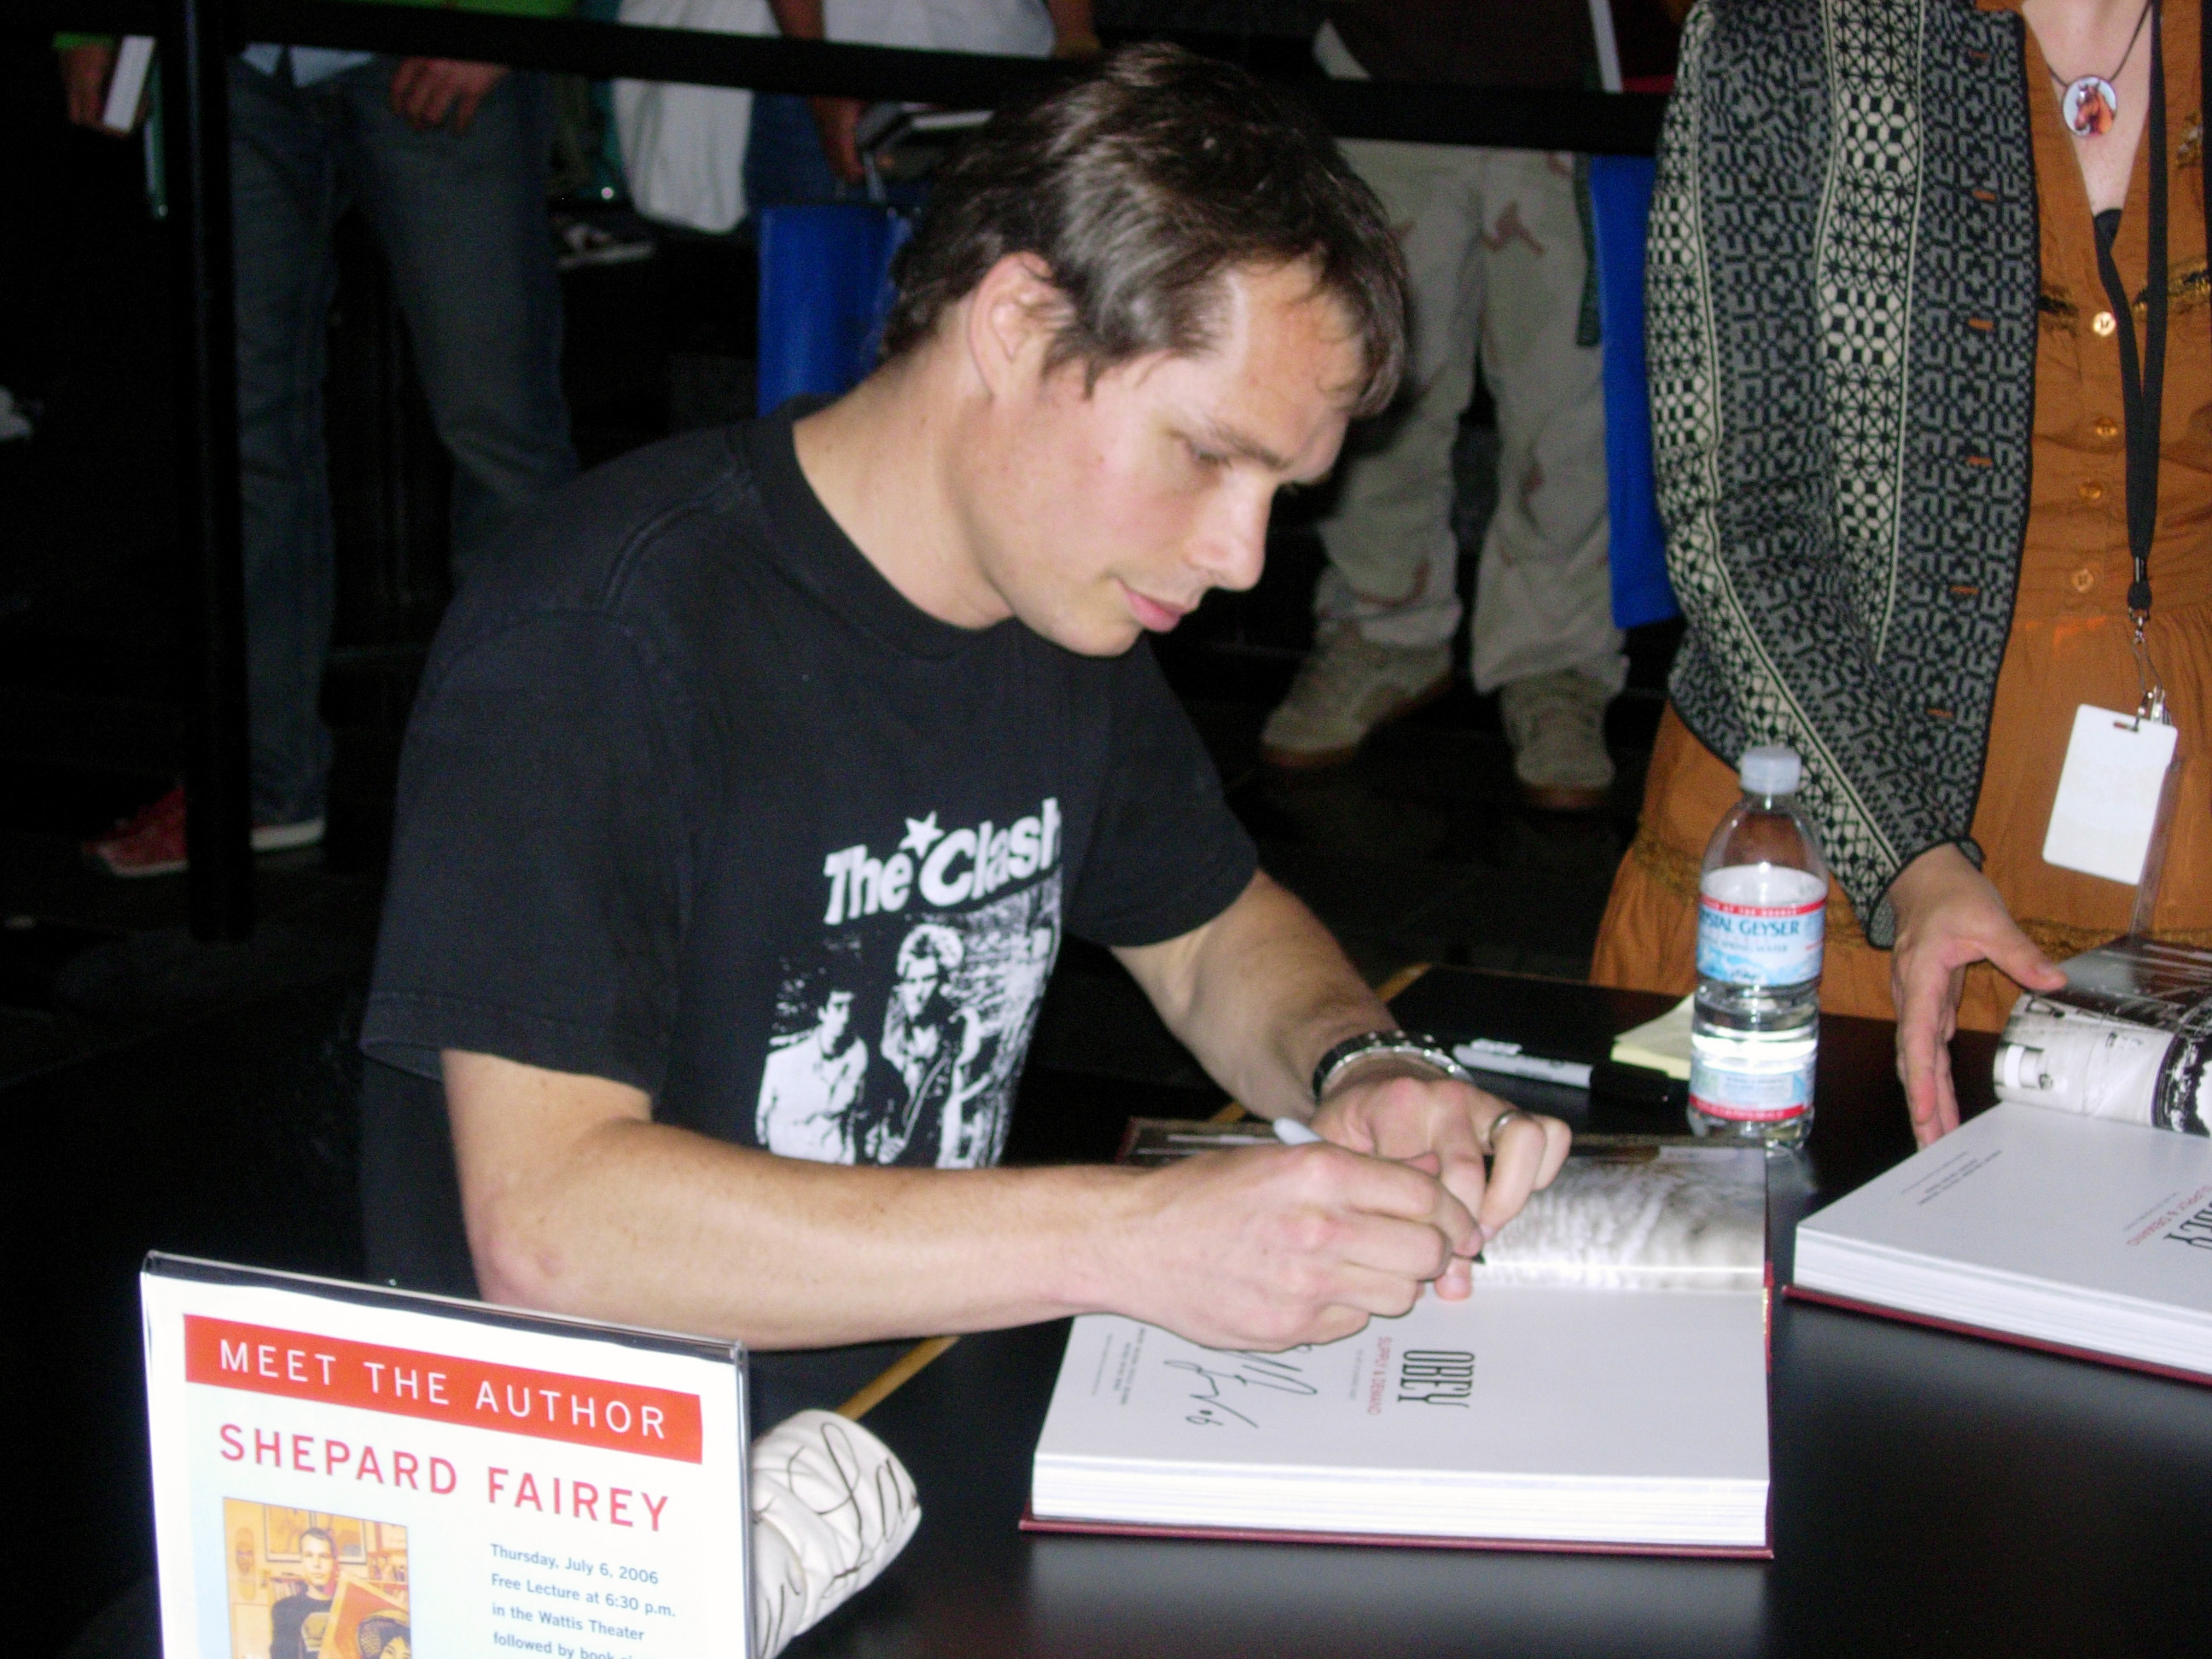 Shepard Fairey at a book signing for Supply & Demand: The Art of Shepard Fairey